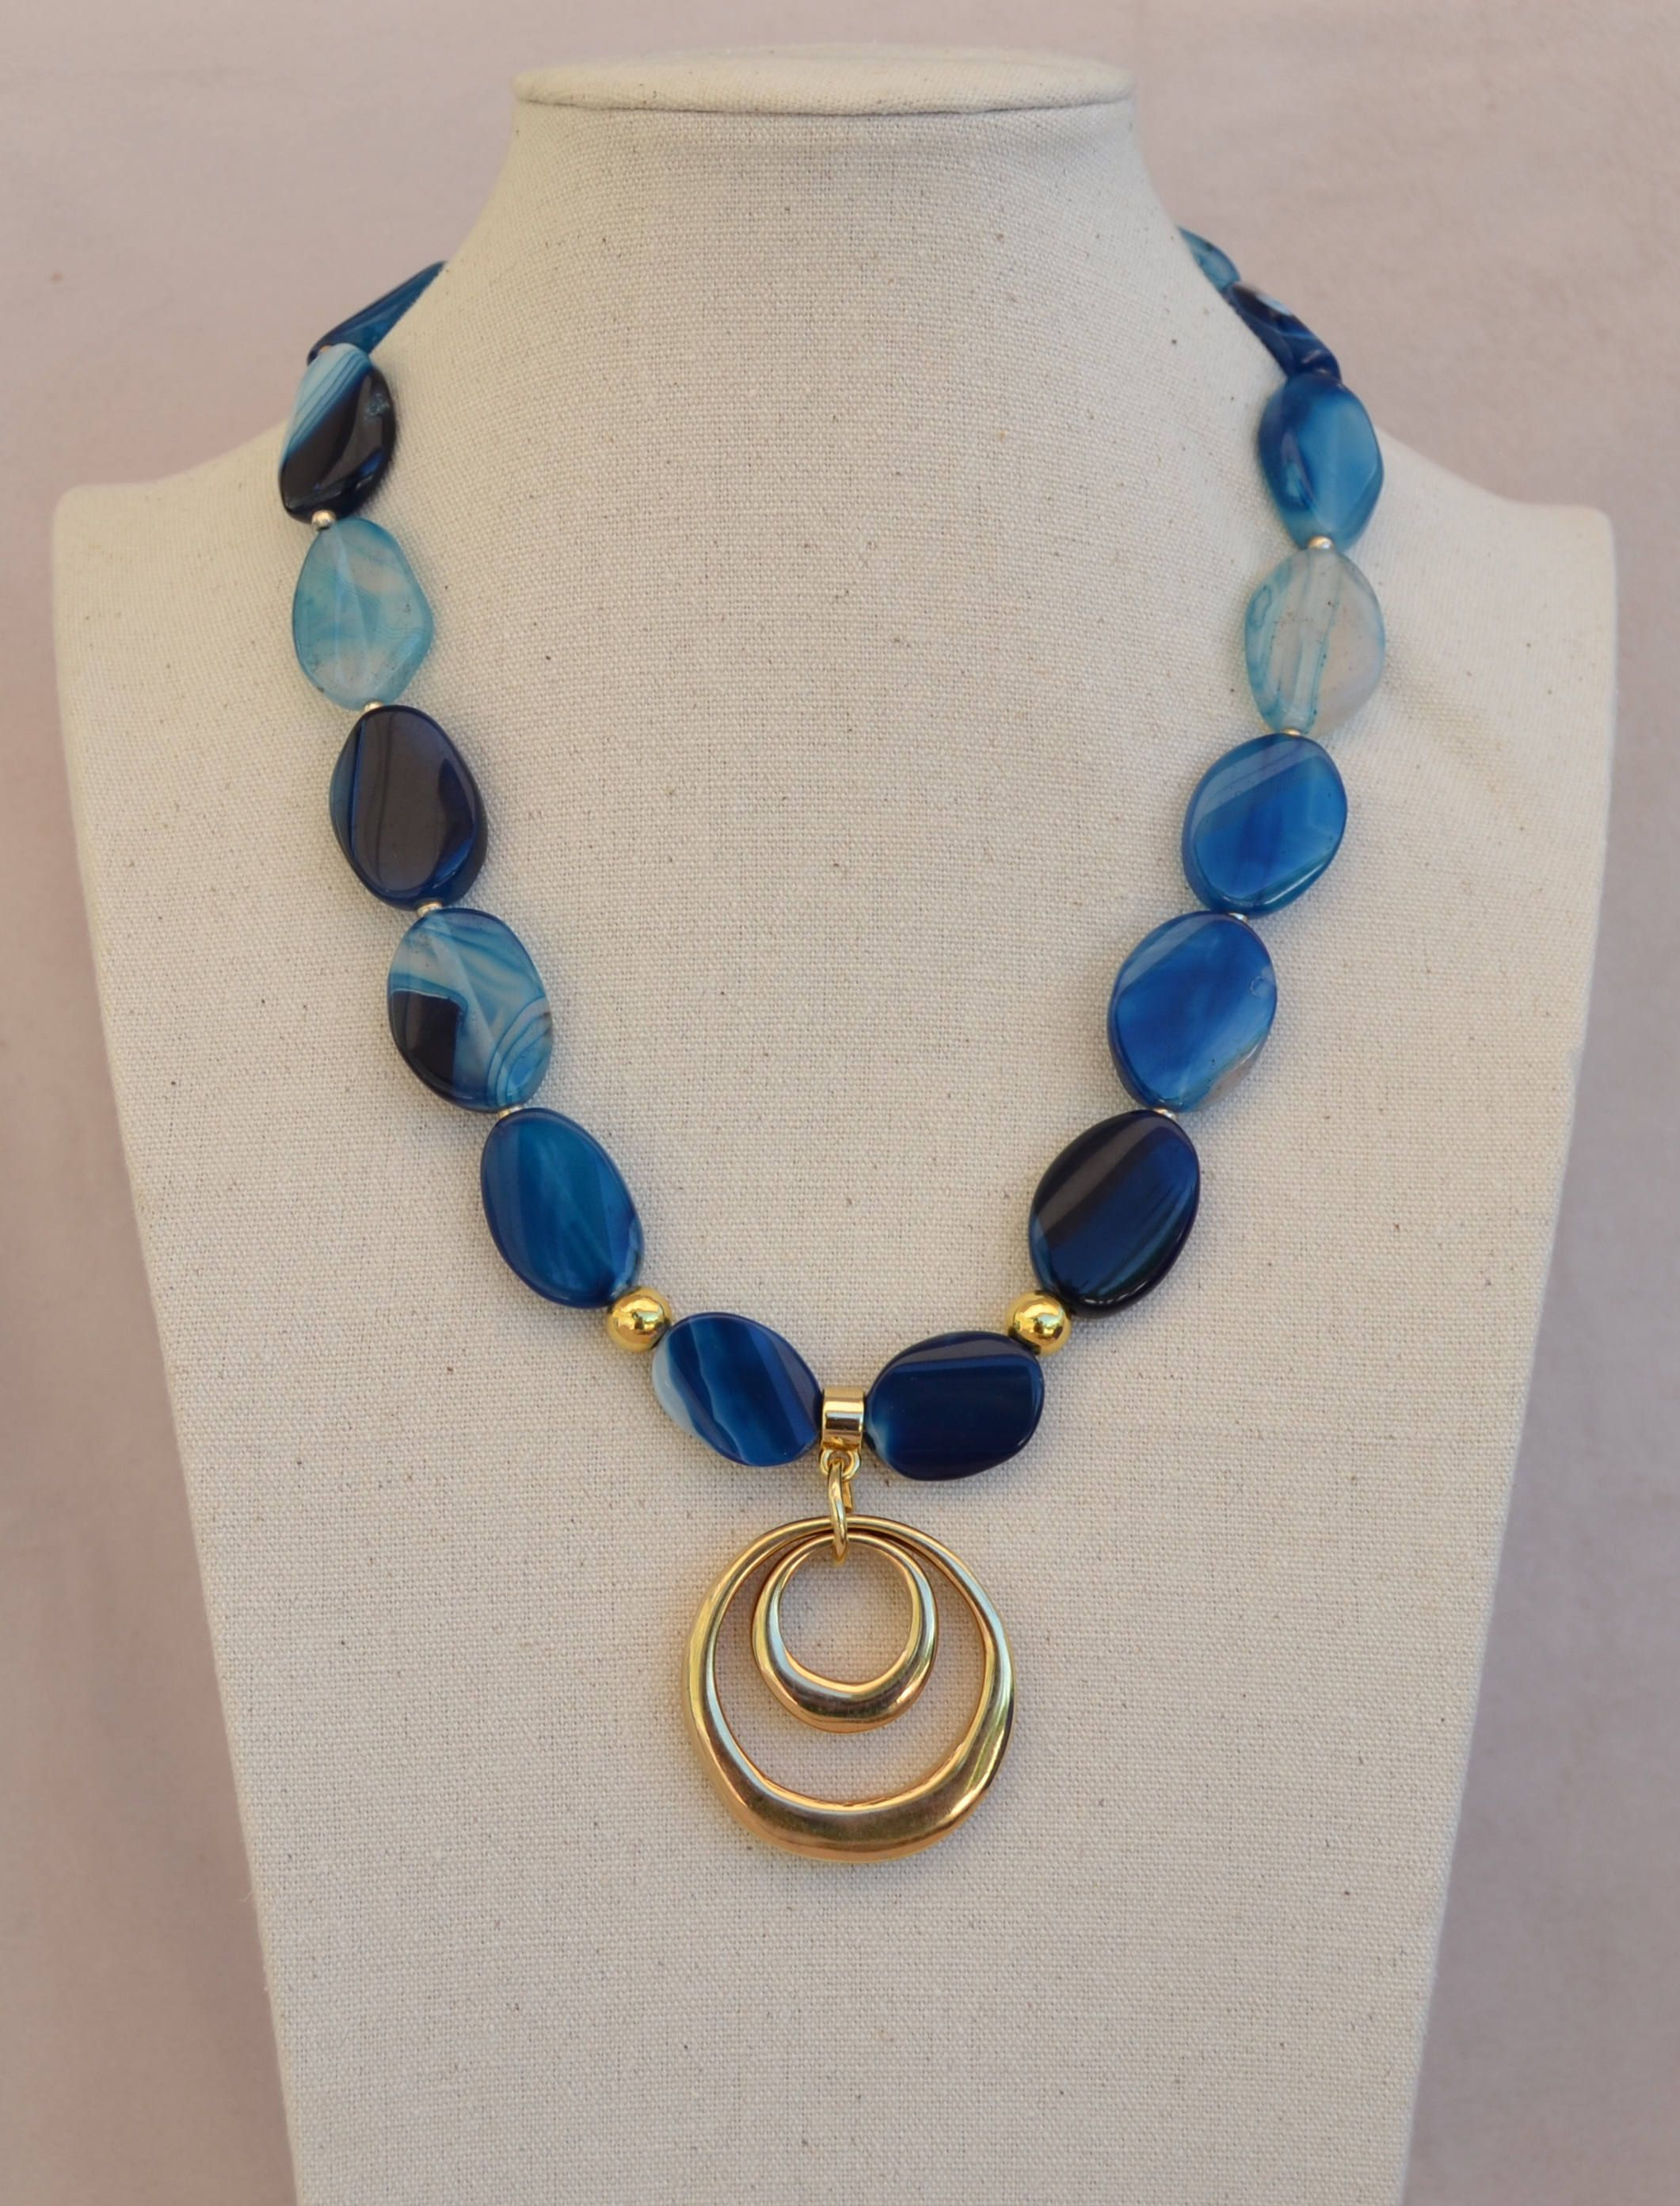 Short necklace of Blue flat agates and Zamak beads with gold bath. Natural stones. Handmade #nigeriandressstyles